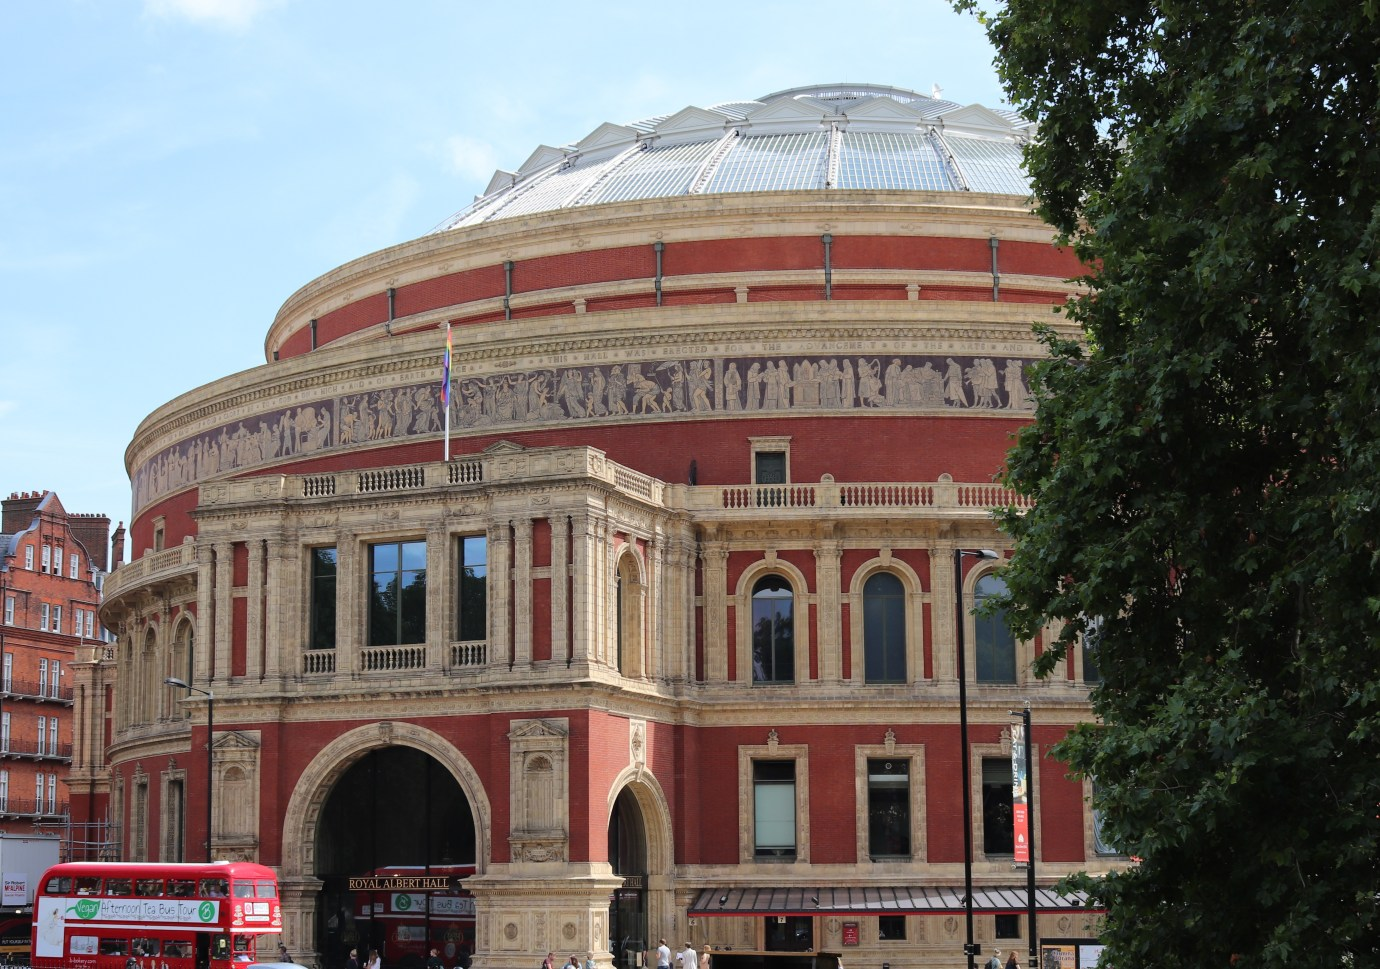 The Royal Albert Hall Main entrance from Kensington Gardens